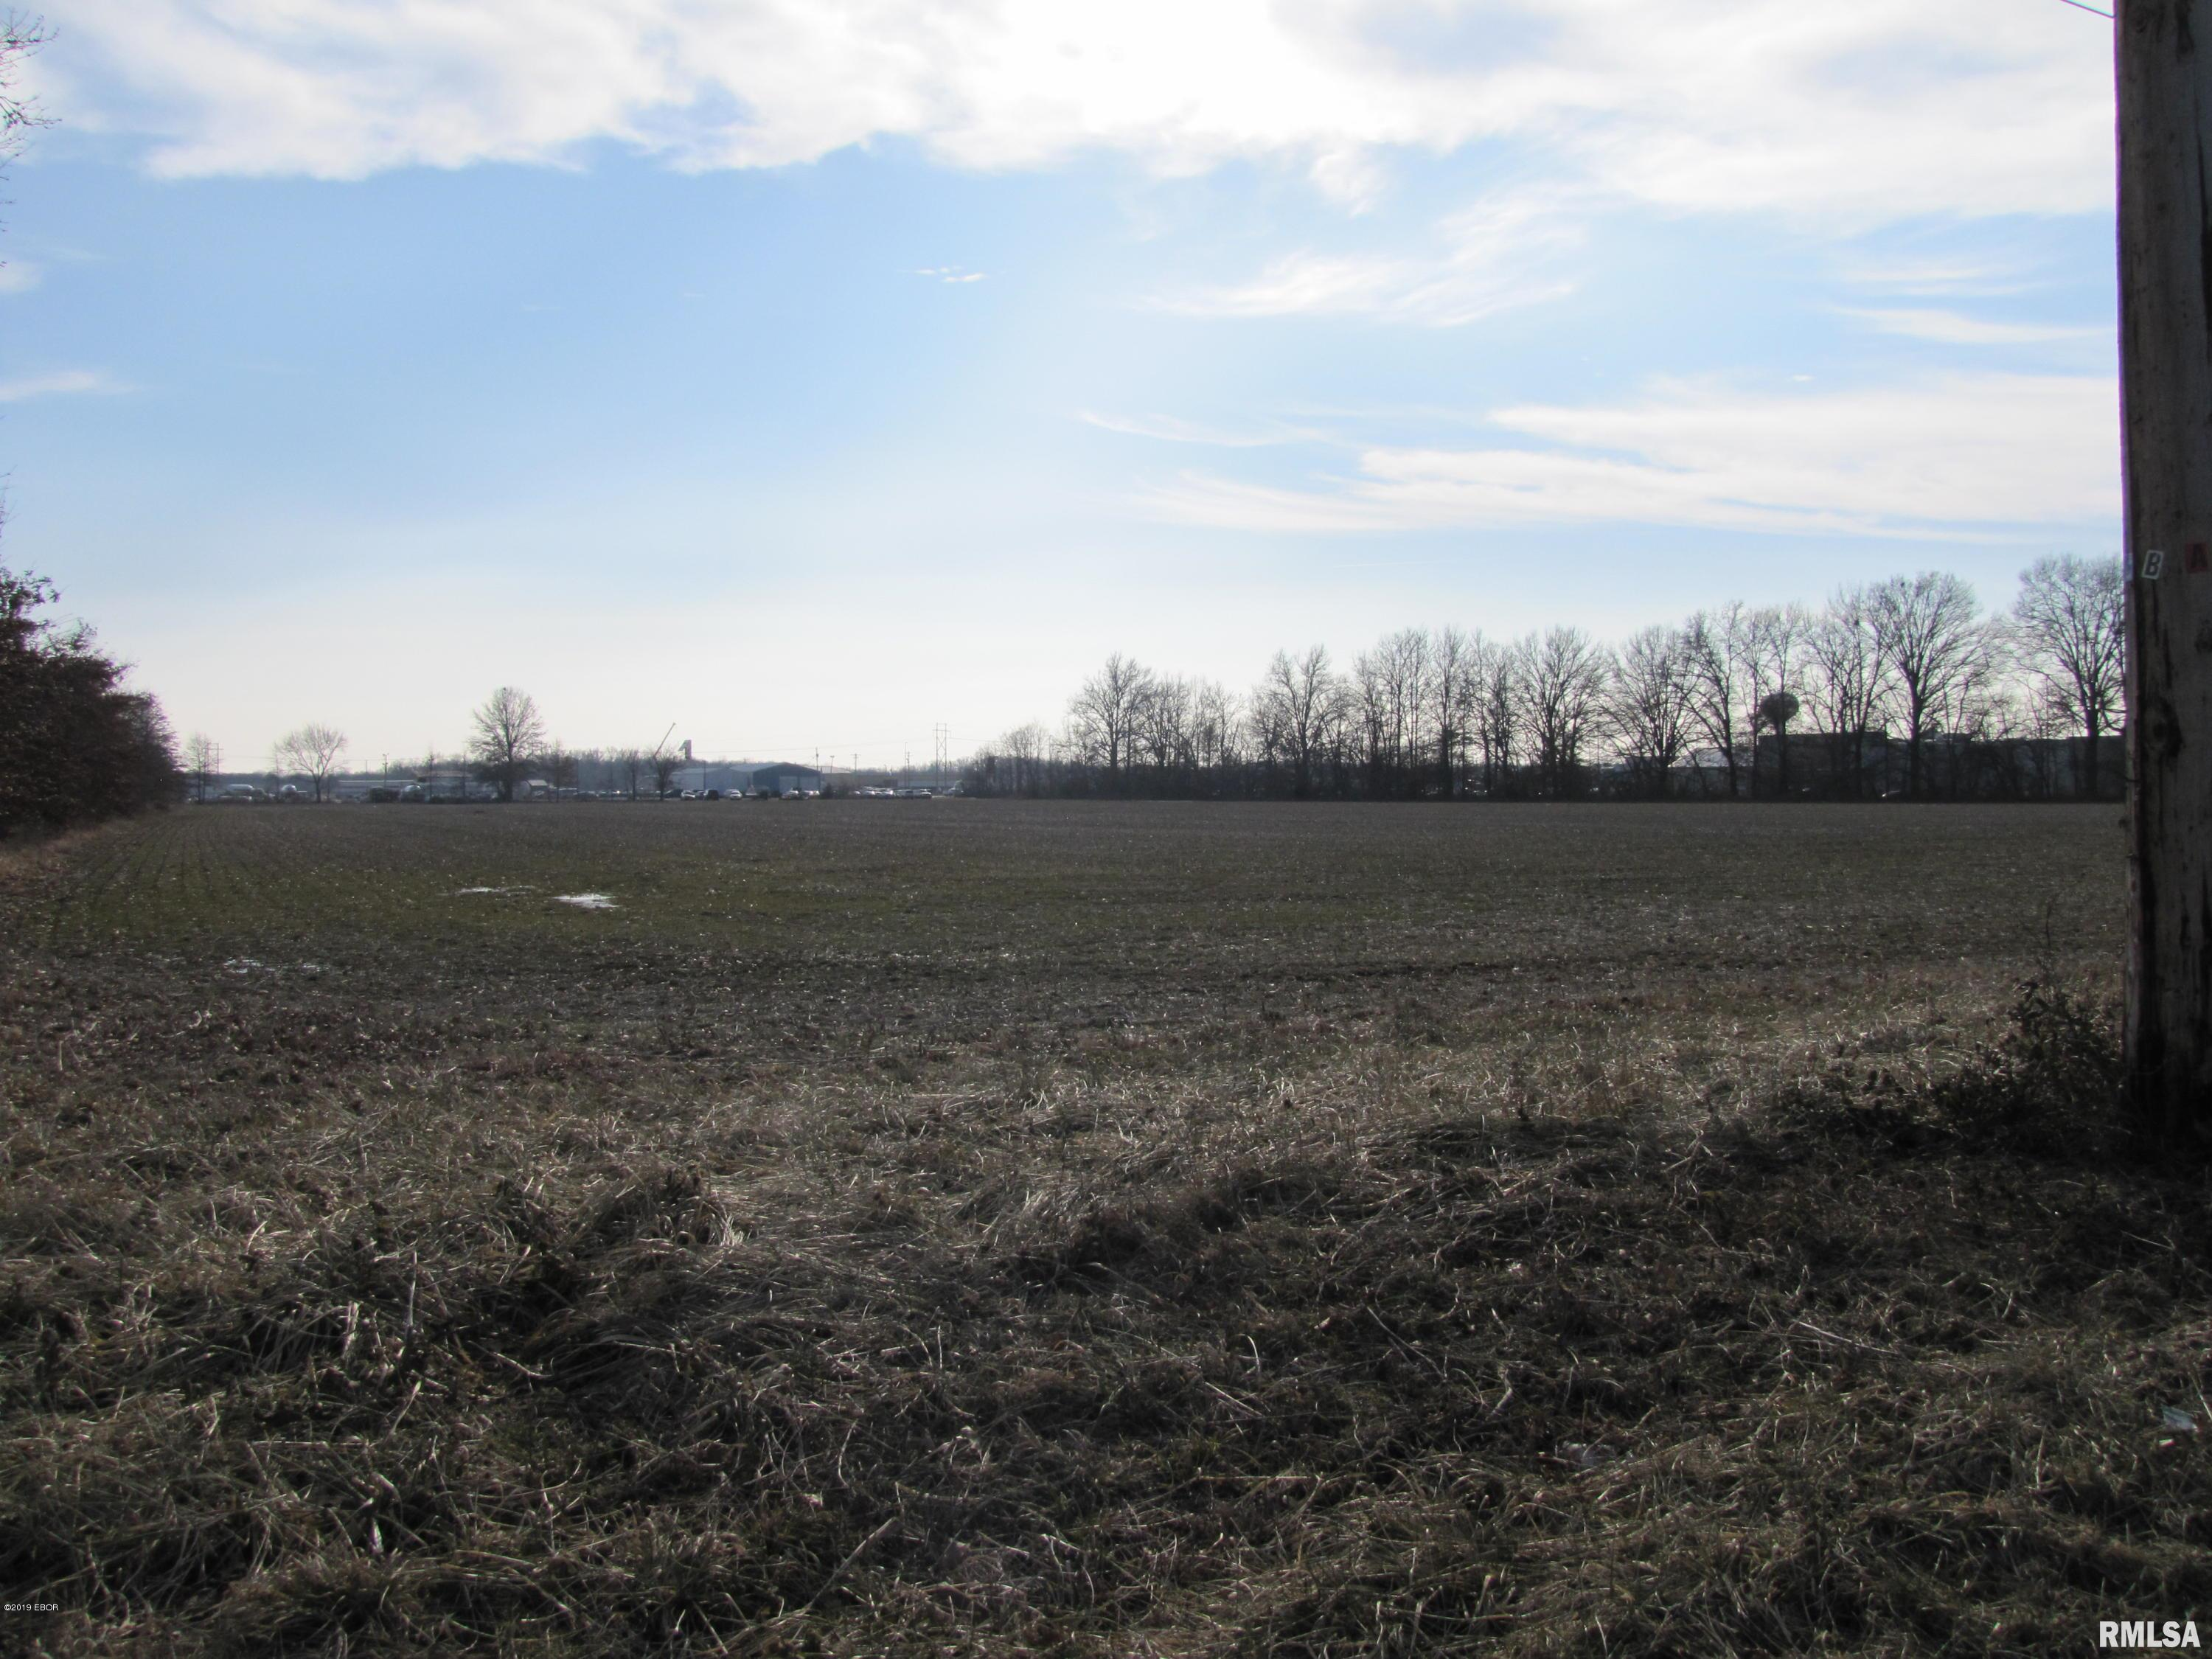 This property is waiting for development! This 11.75 acres puts you in the up-and coming west side of town, close to I-57 and Rt. 50 West. All utilities are available at the N. Hotze entrance and from US HWY 50. N. Hotze entrance is located in the I-57 interchange business district.